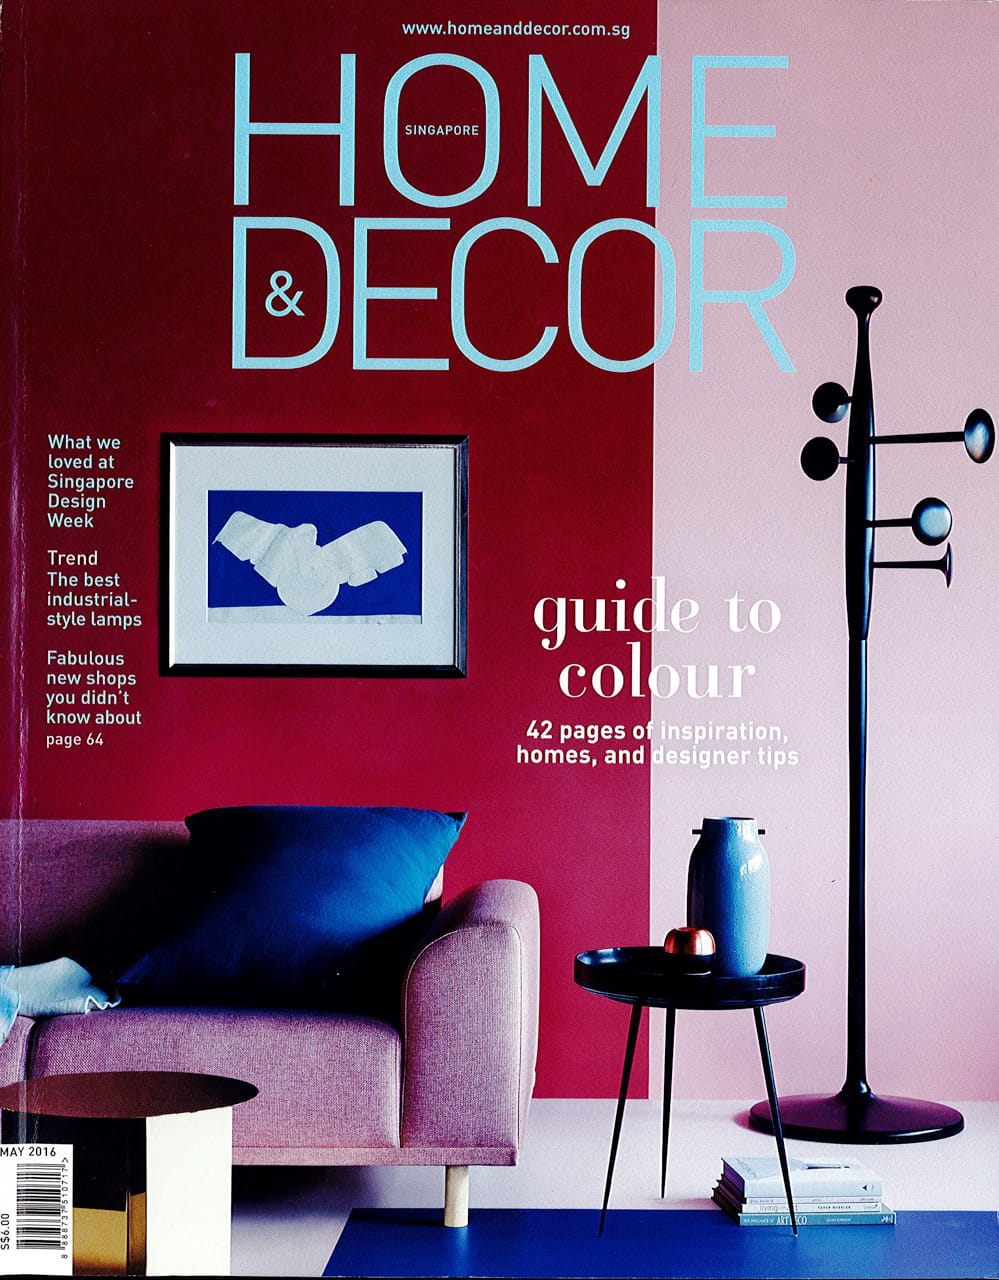 Home & Decor - May 2016